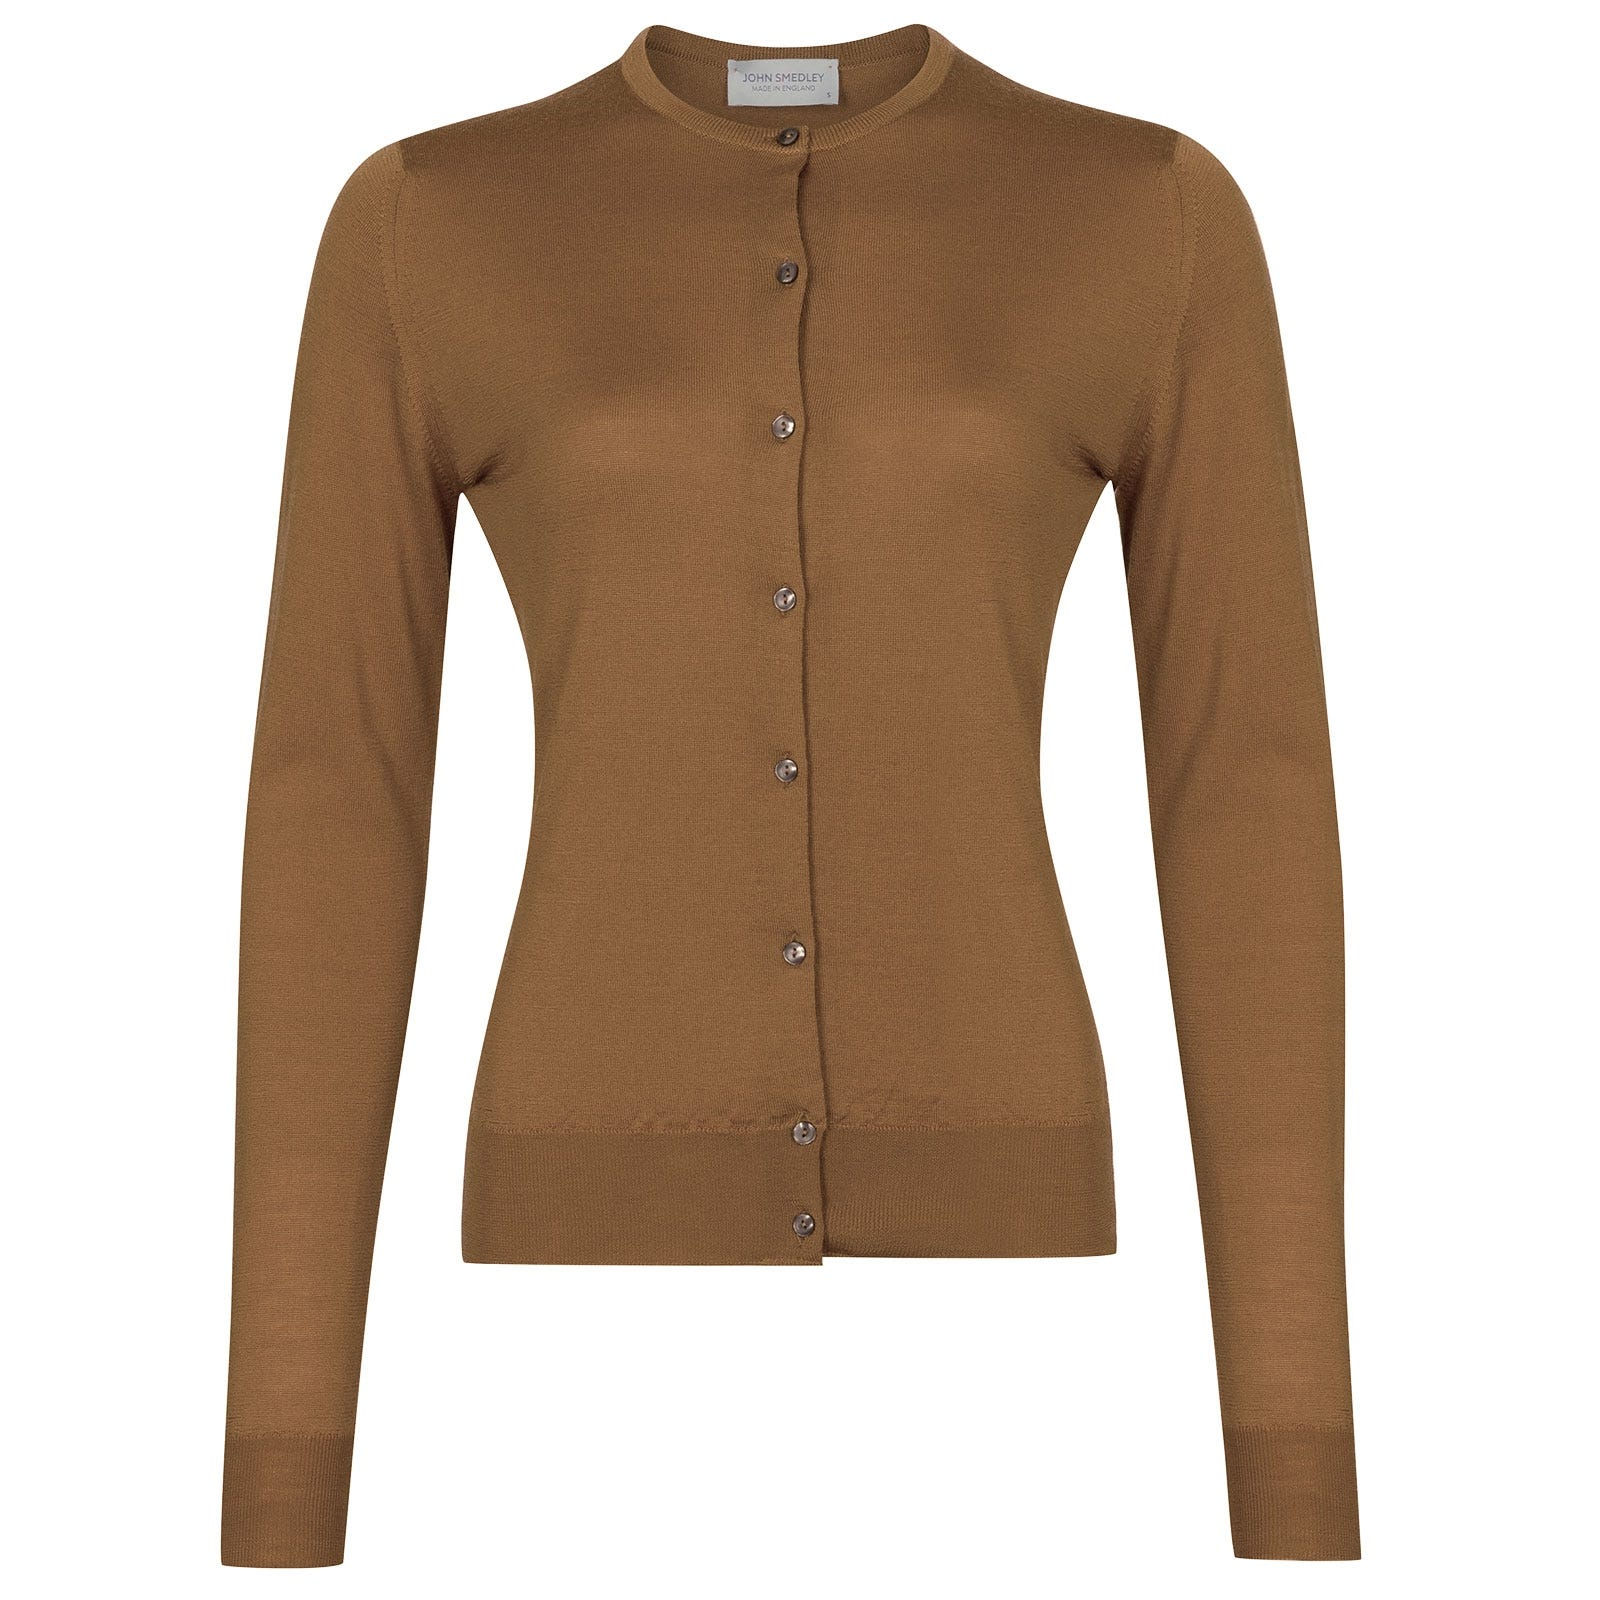 John Smedley Pansy in Camel Cardigan-XLG